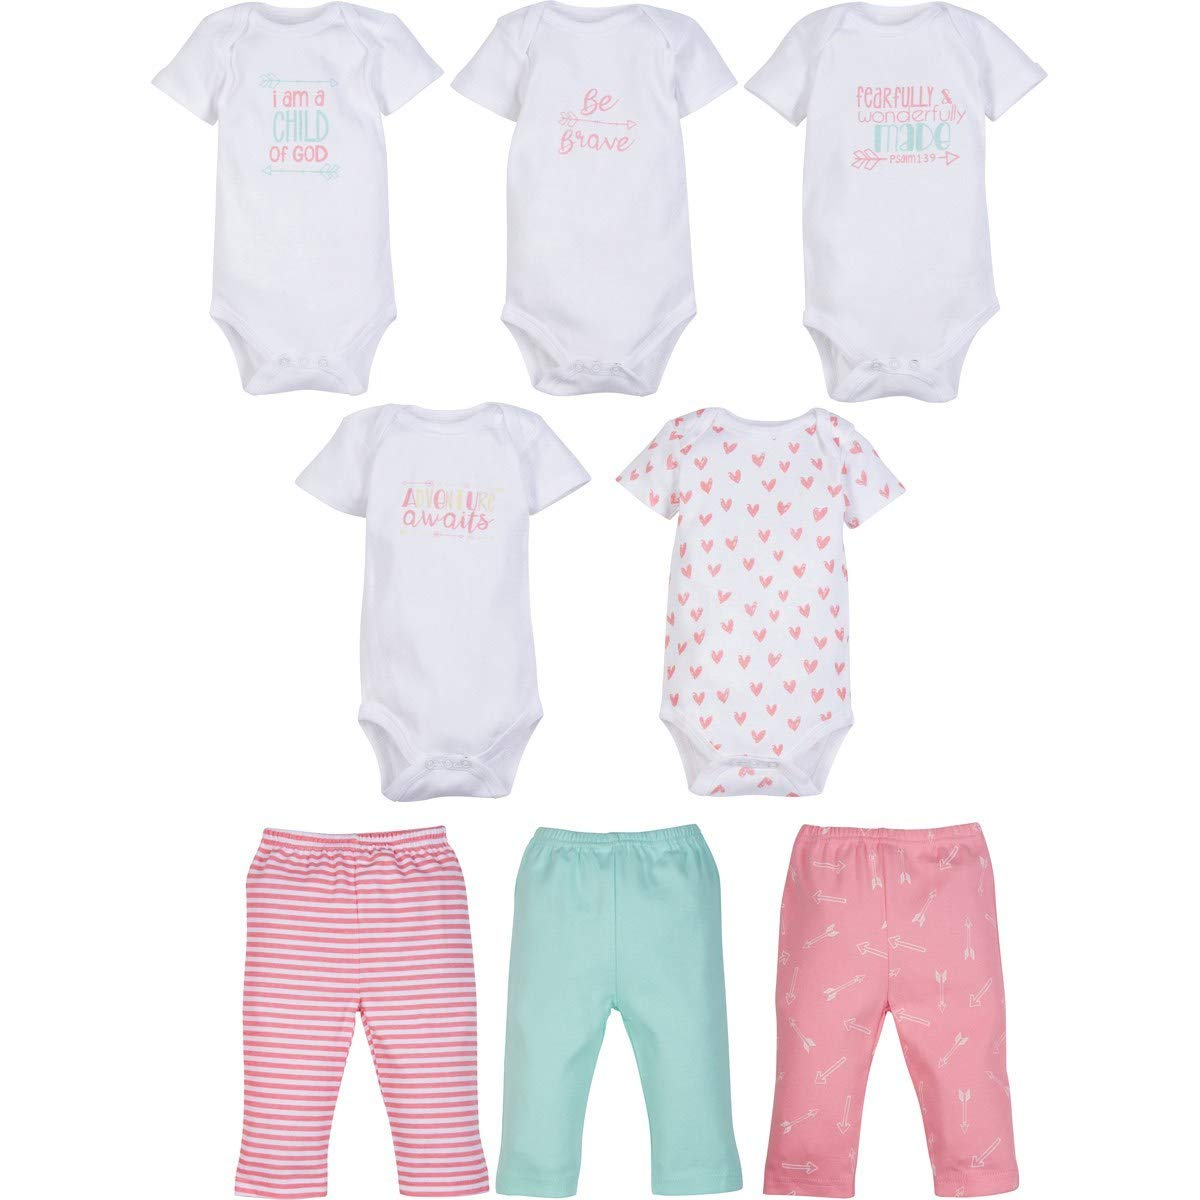 MiracleWear Cute Kids Outfits w//Bodysuit Rompers /& Pants Boy /& Girl Clothing Sets 8 Pcs